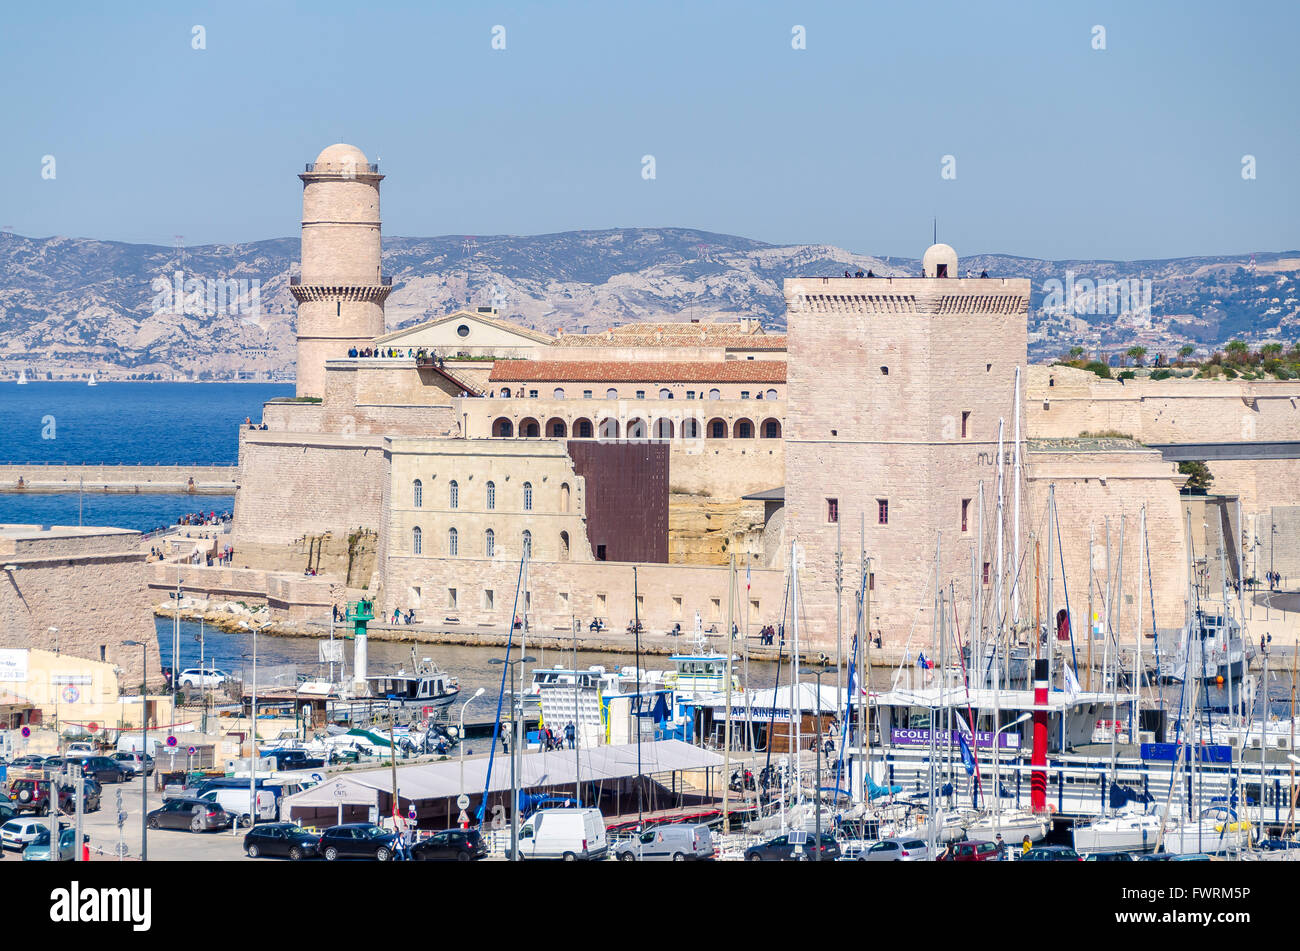 Fort saint jean marseille bdr france 13 stock photo for Marseille bdr